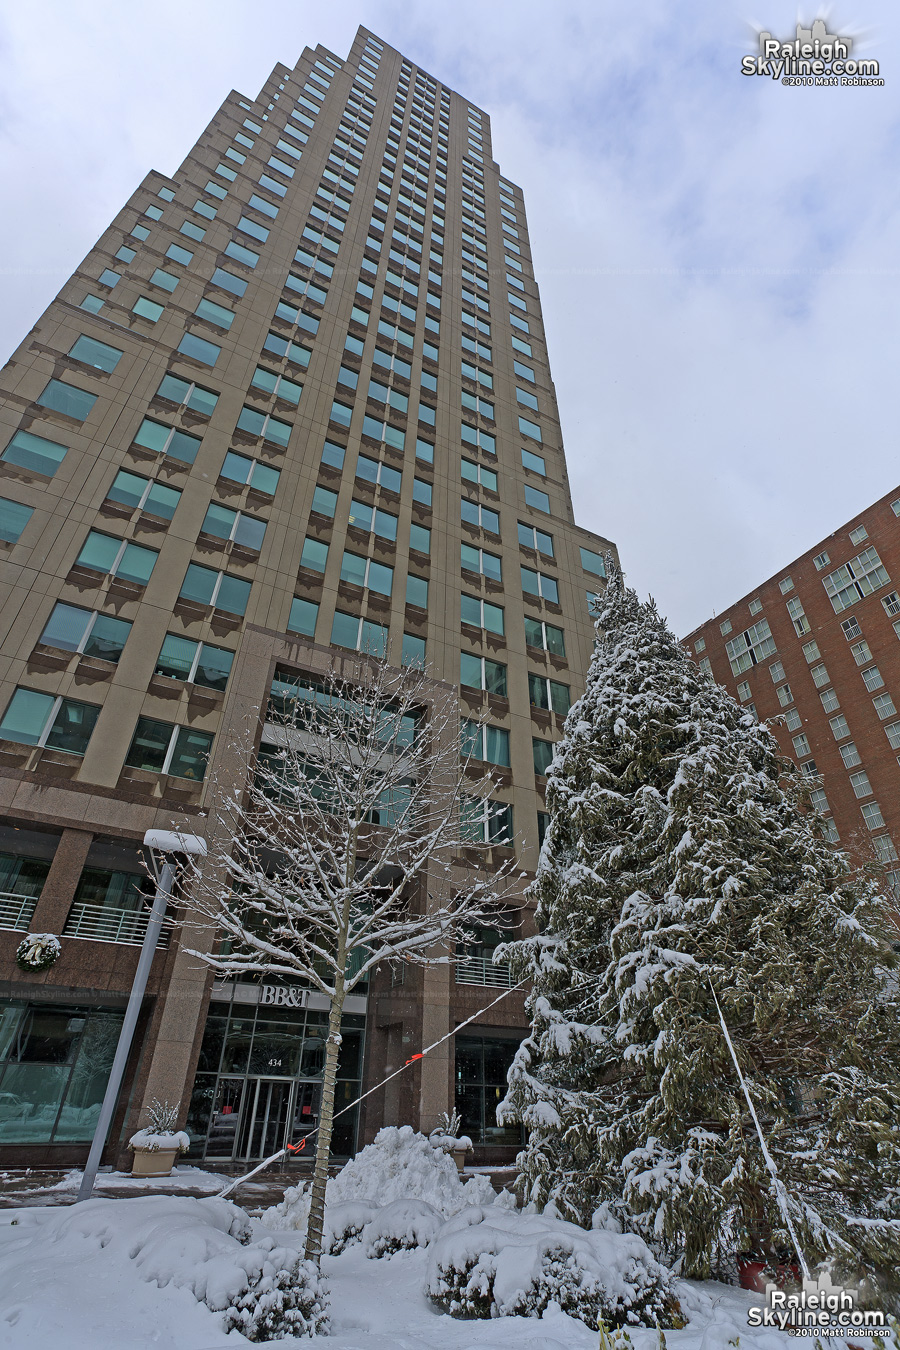 City Plaza Christmas tree covered in snow